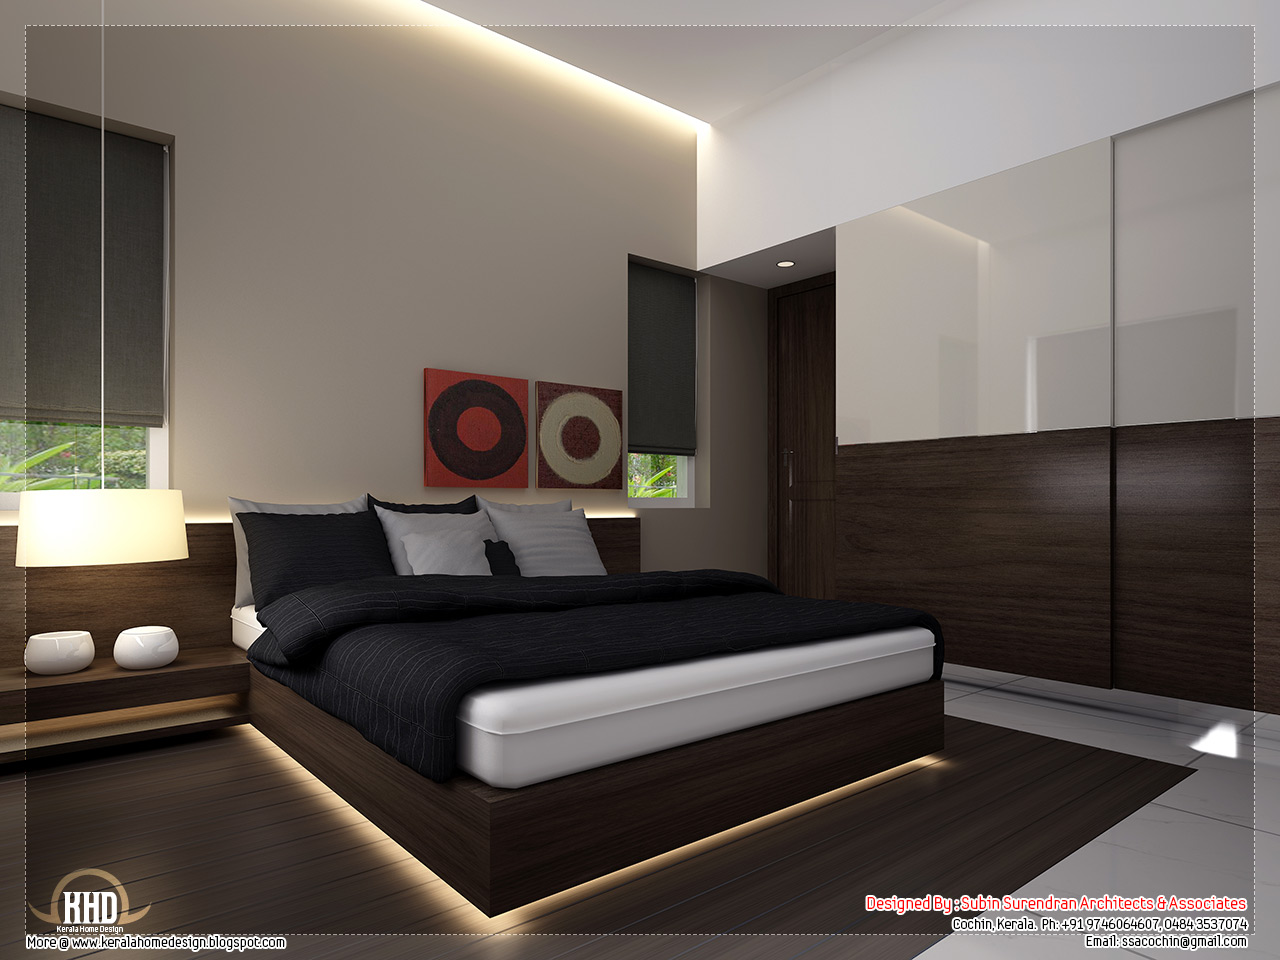 Beautiful home interior designs kerala homes for Interior design ideas bedroom